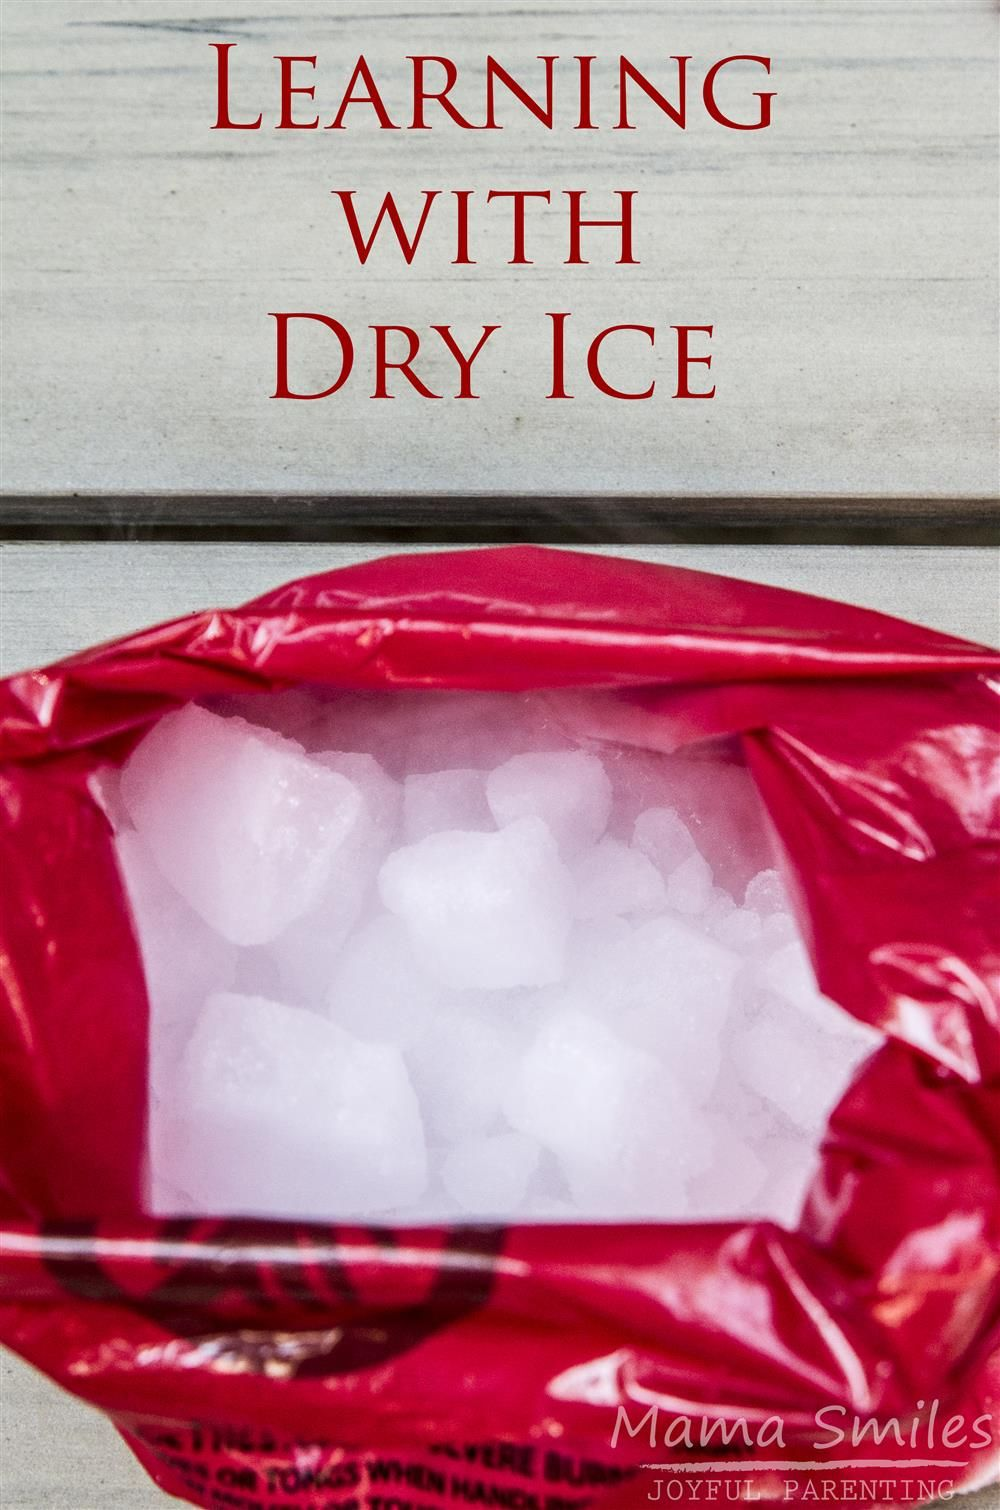 Get Kids Excited About Science with 5 Dry Ice Experiments